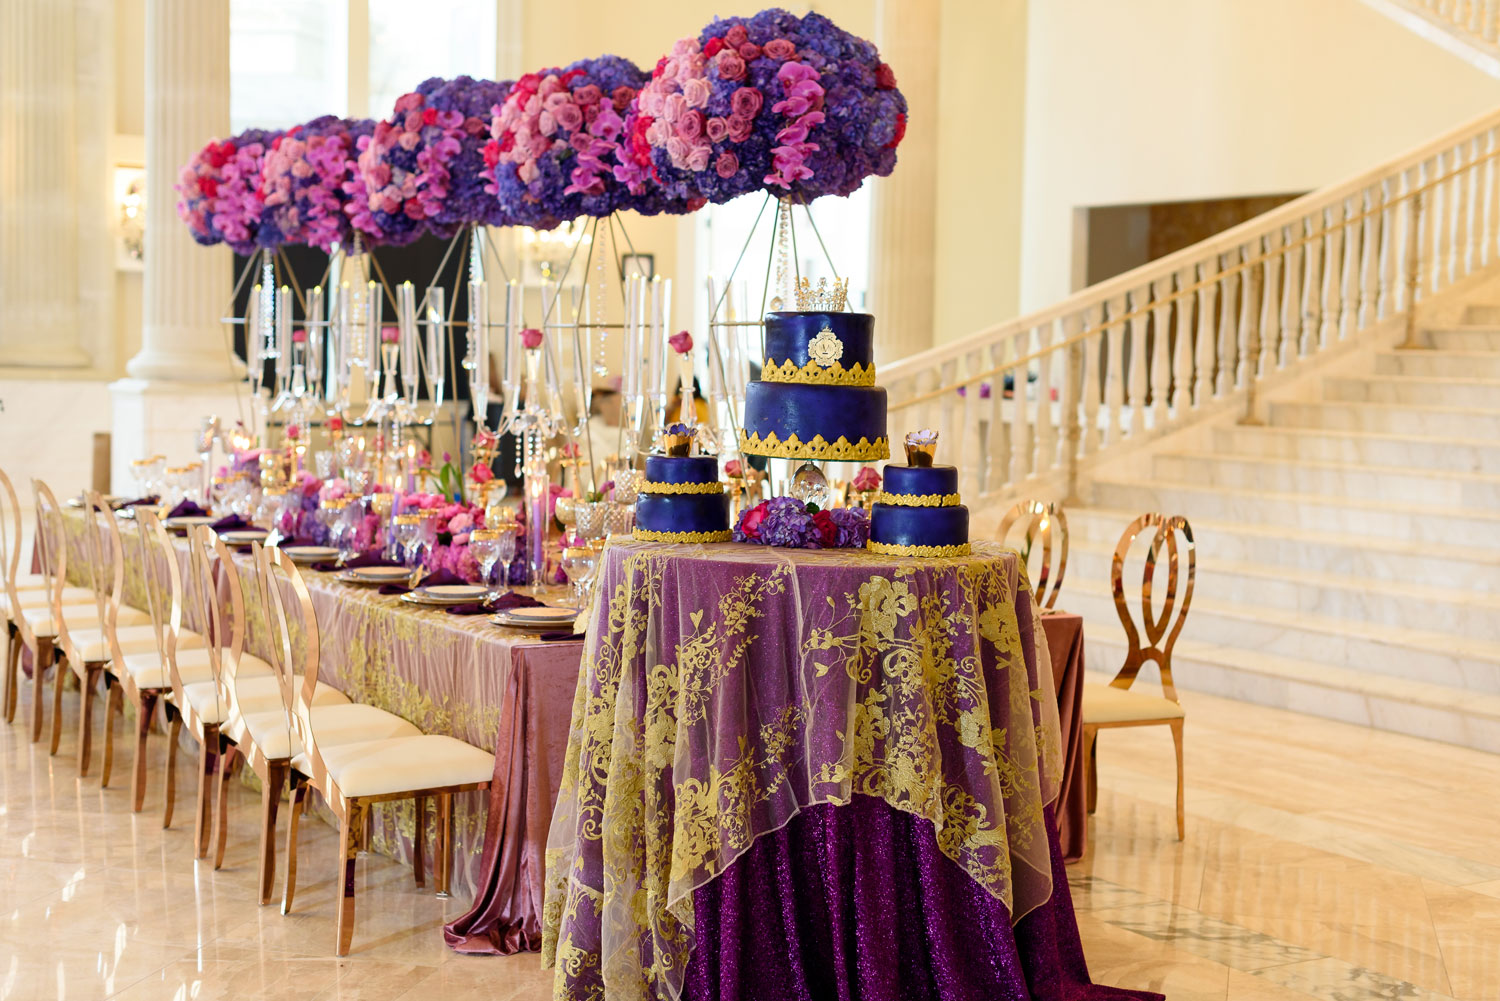 Pantone Color of the Year 2018 Ultra Violet wedding ideas wedding reception cake and table